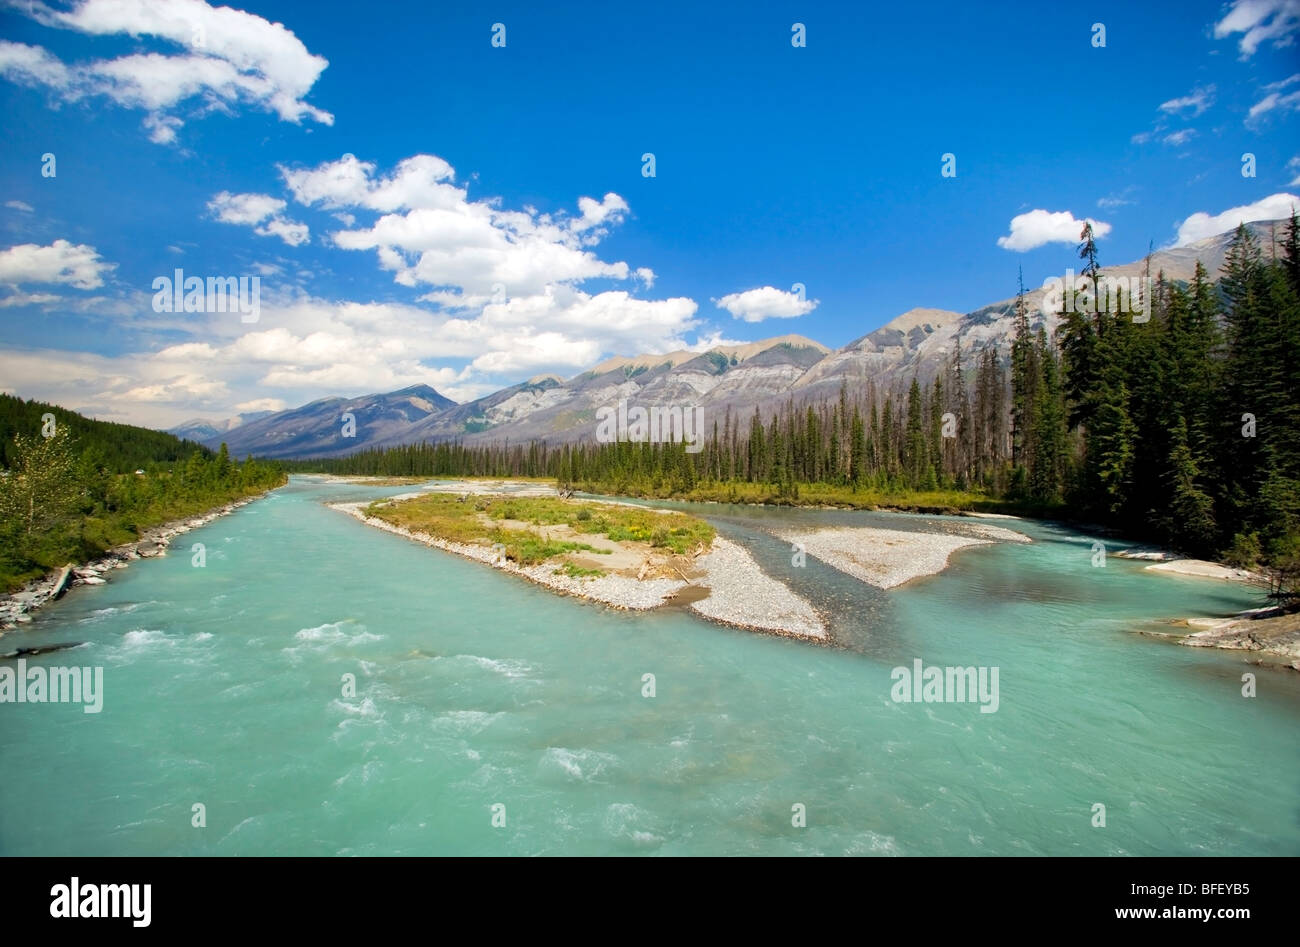 Kootenay river kootenay national park british columbia canada kootenay river kootenay national park british columbia canada mountain sciox Image collections